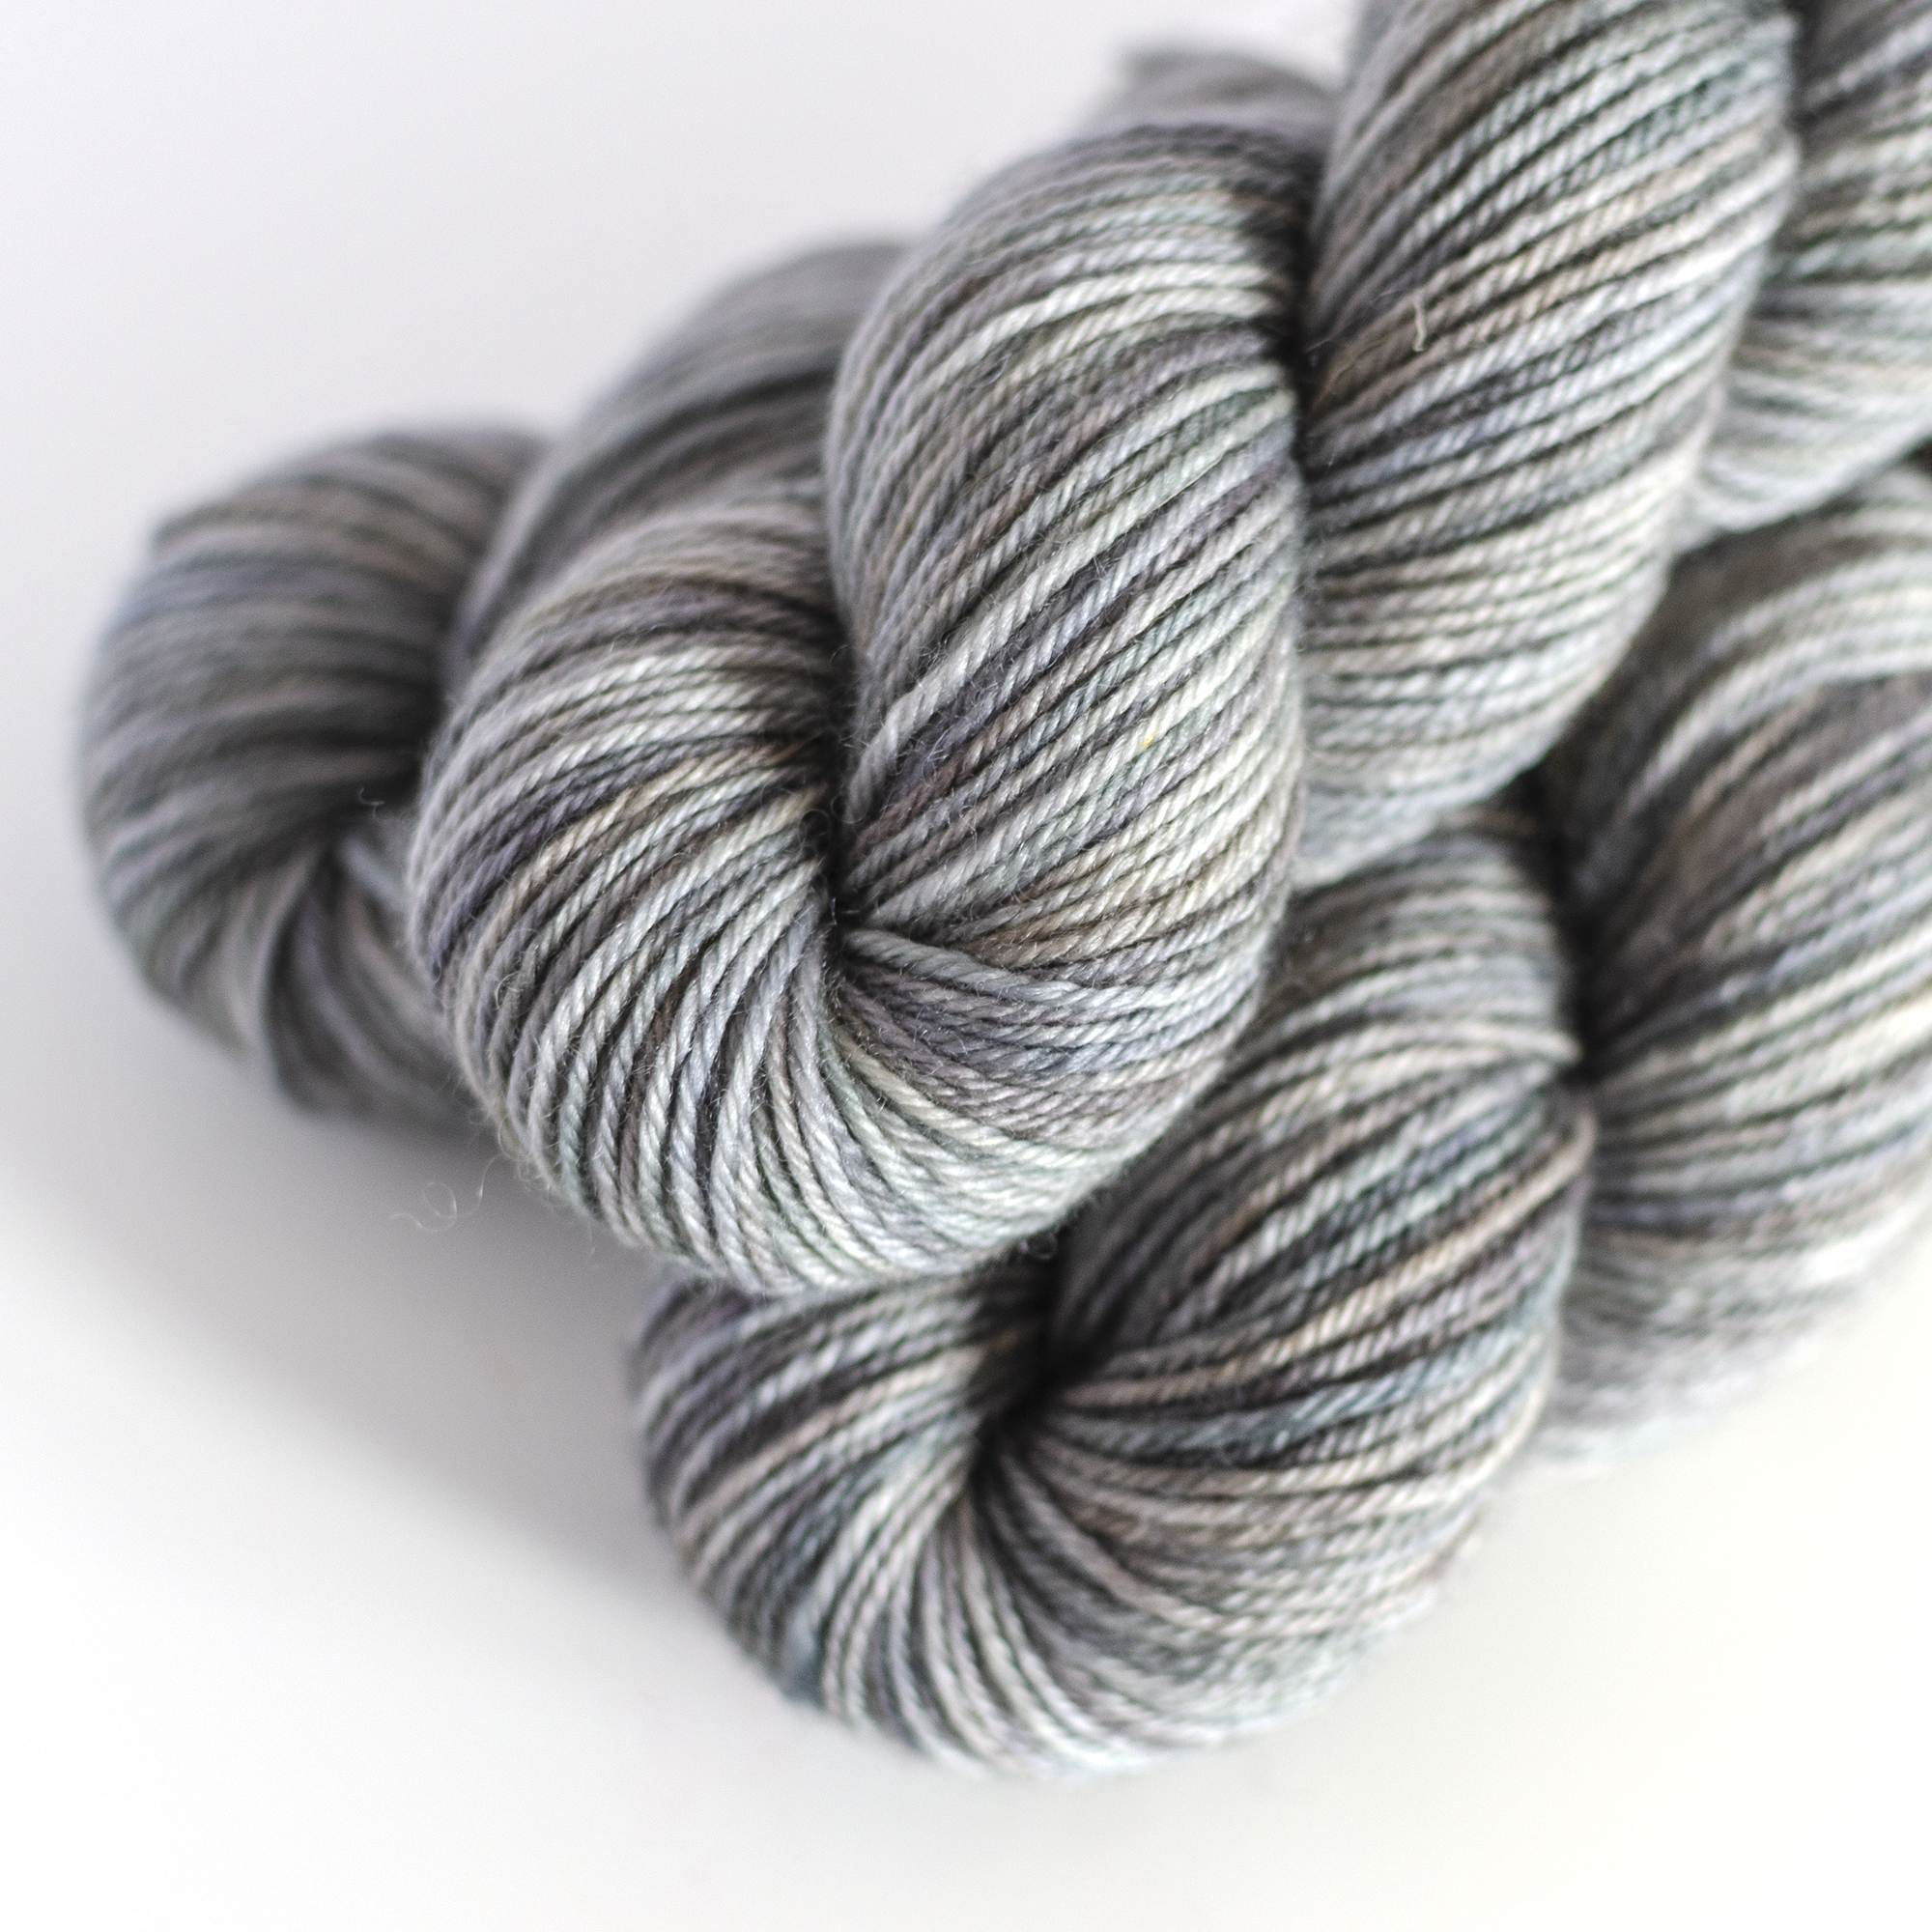 Luna| DK - $23  100% SW British Bluefaced Leicester Wool  4 plies  236 yards / 215 meters  ~95 grams  DK weight  US 5-7 / 3.75-4.5mm  Hand wash or machine wash gentle cycle / Dry flat  Luna | DK has a natural luster and beautiful drape.